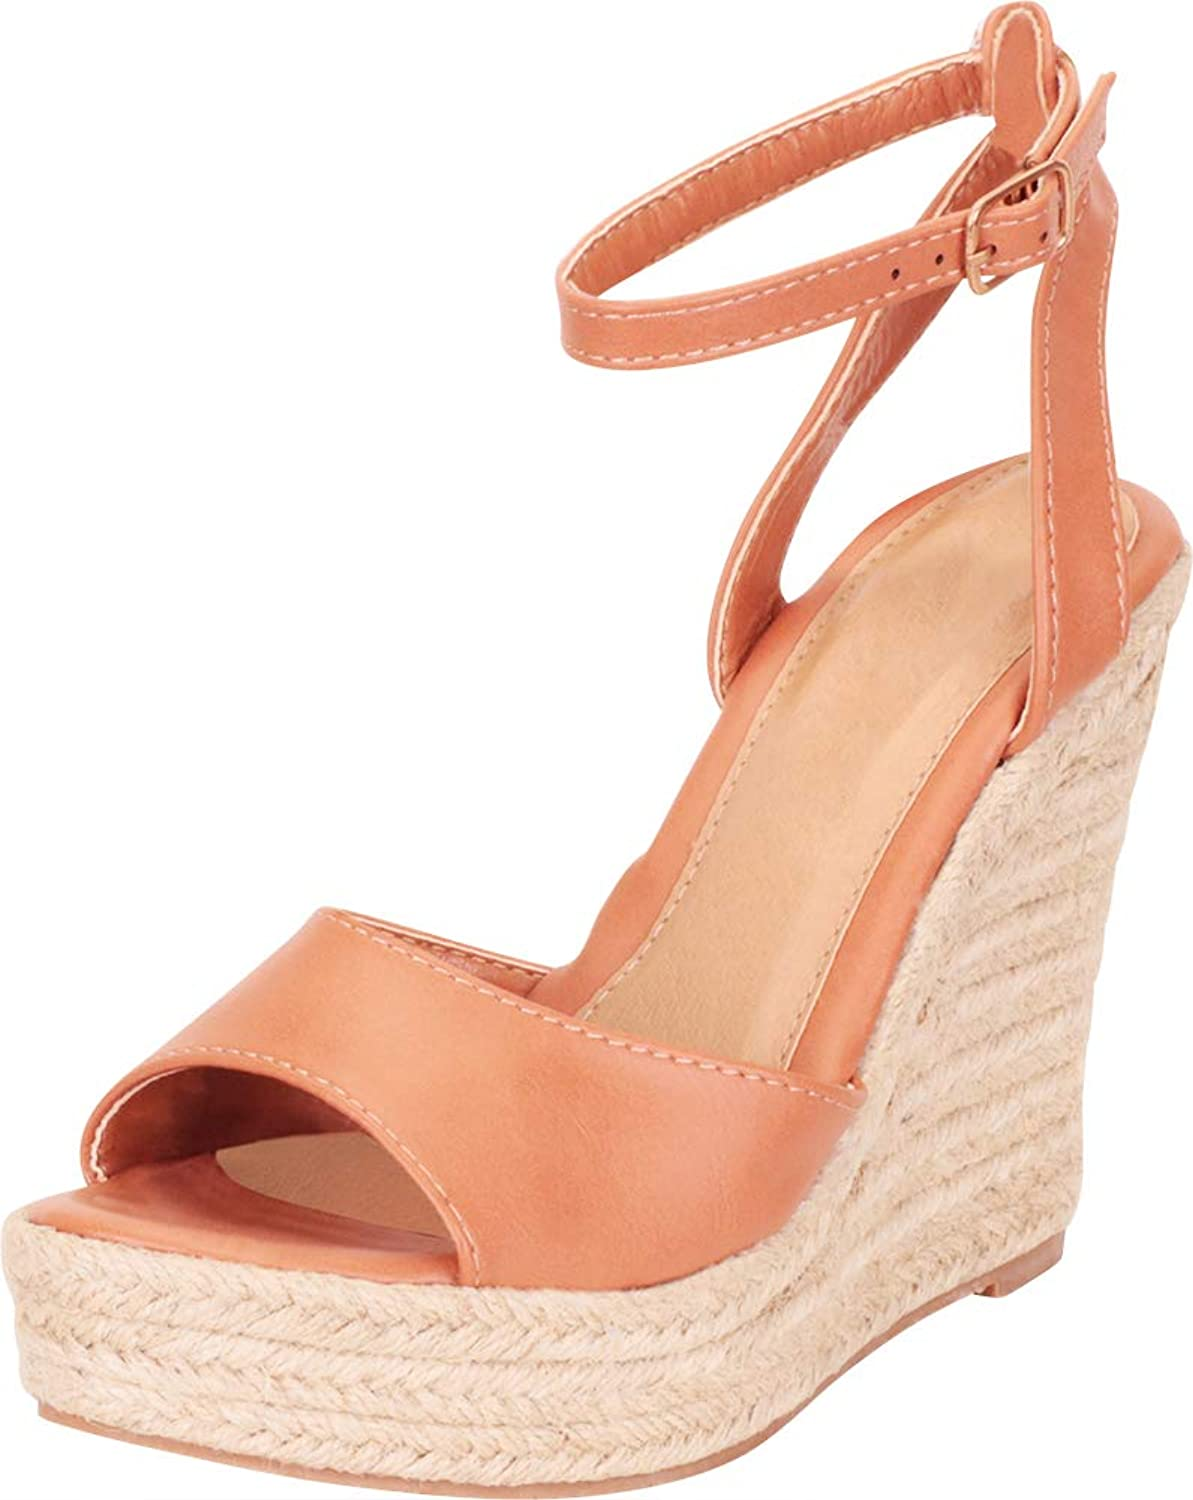 Cambridge Select Women's Ankle Strap Chunky Espadrille Platform High Wedge Sandal